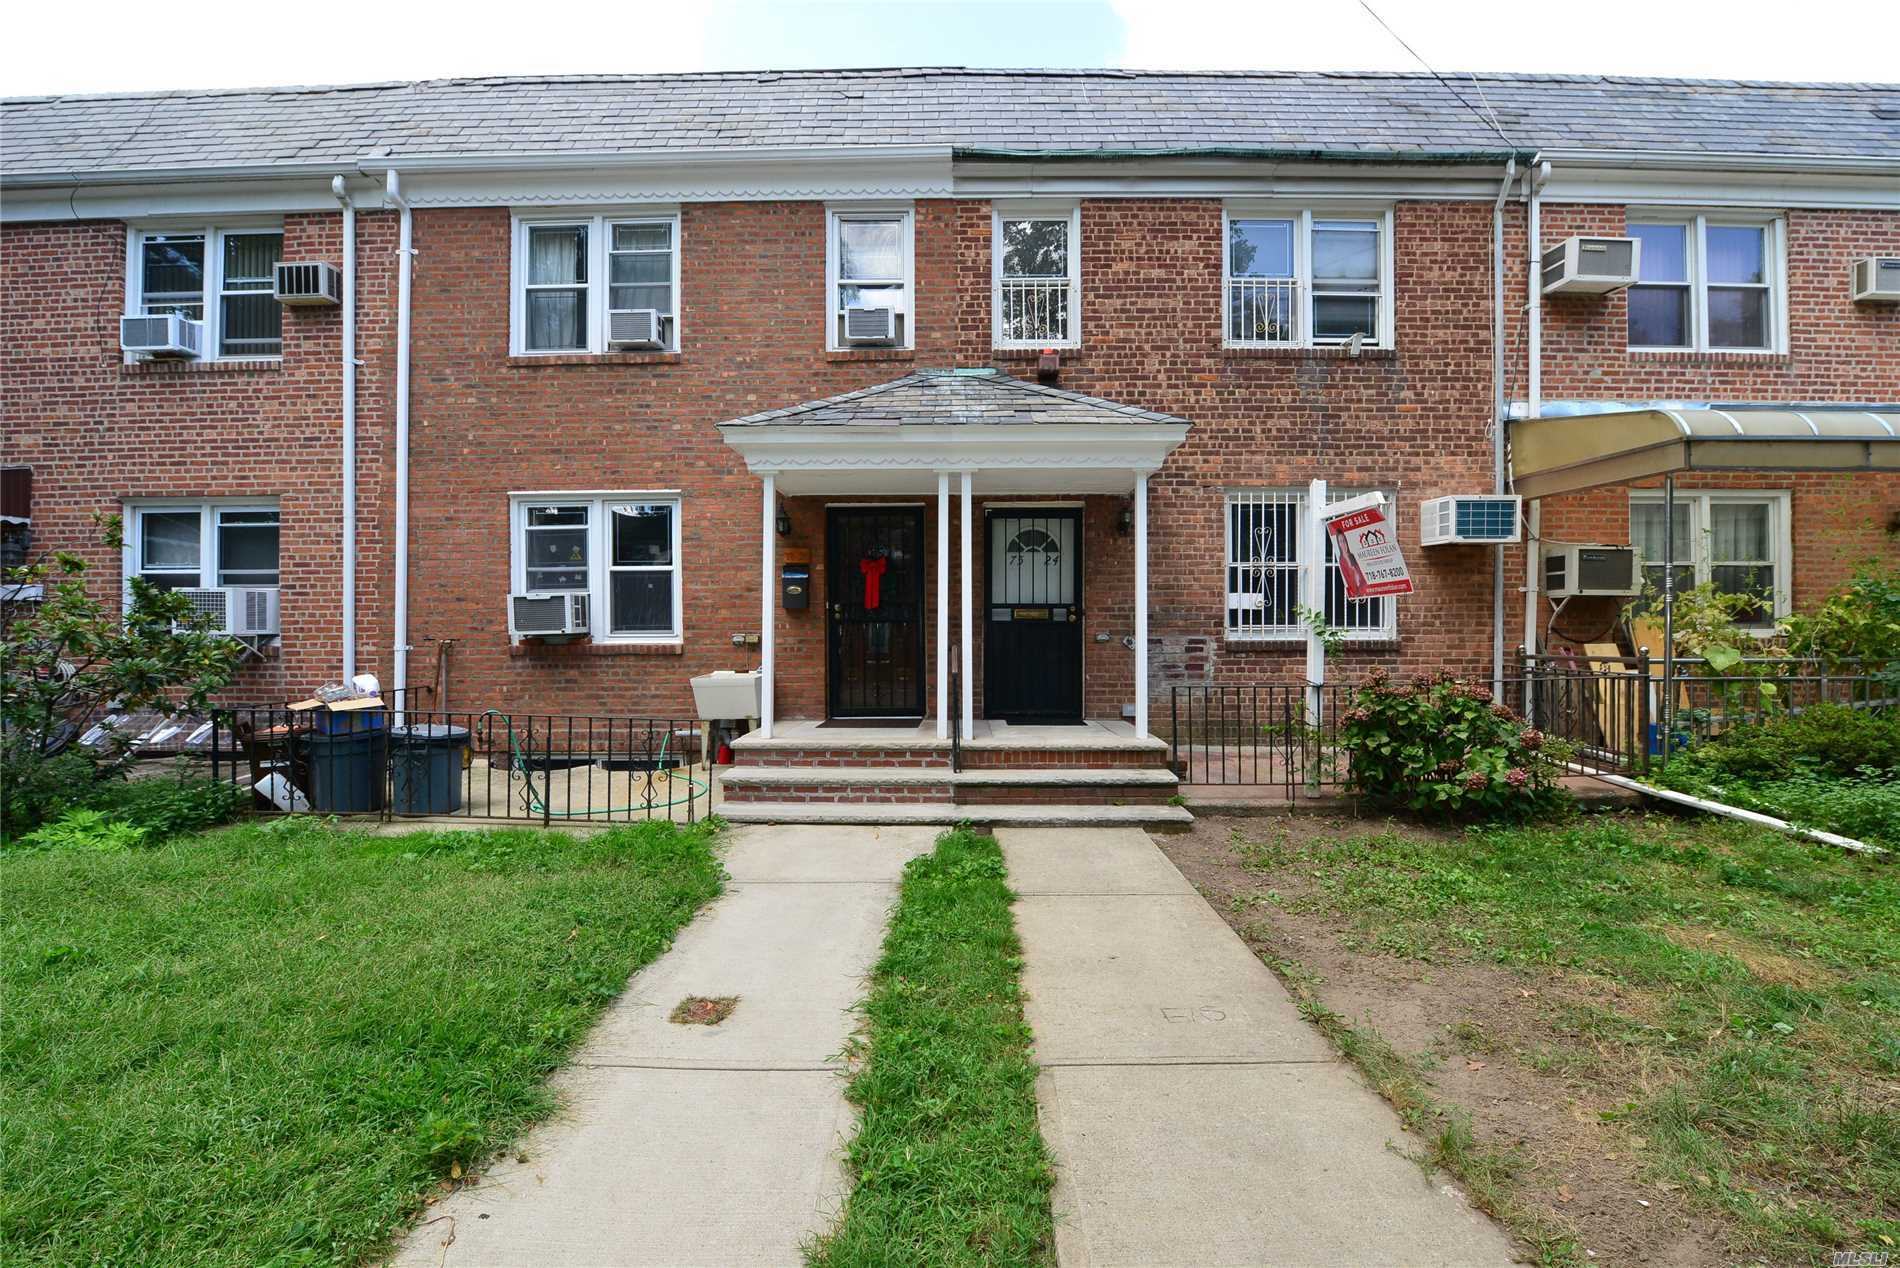 Just Arrived- Great Opportunity To Buy An Affordable Home In Fresh Meadows. This Brick Townhouse Is Freshly Painted And Ready To Be Updated To Your Liking. Convenient To Shopping And Transportation Along Union Turnpike & Express Bus. Schools: Ps 154 & Jhs 250